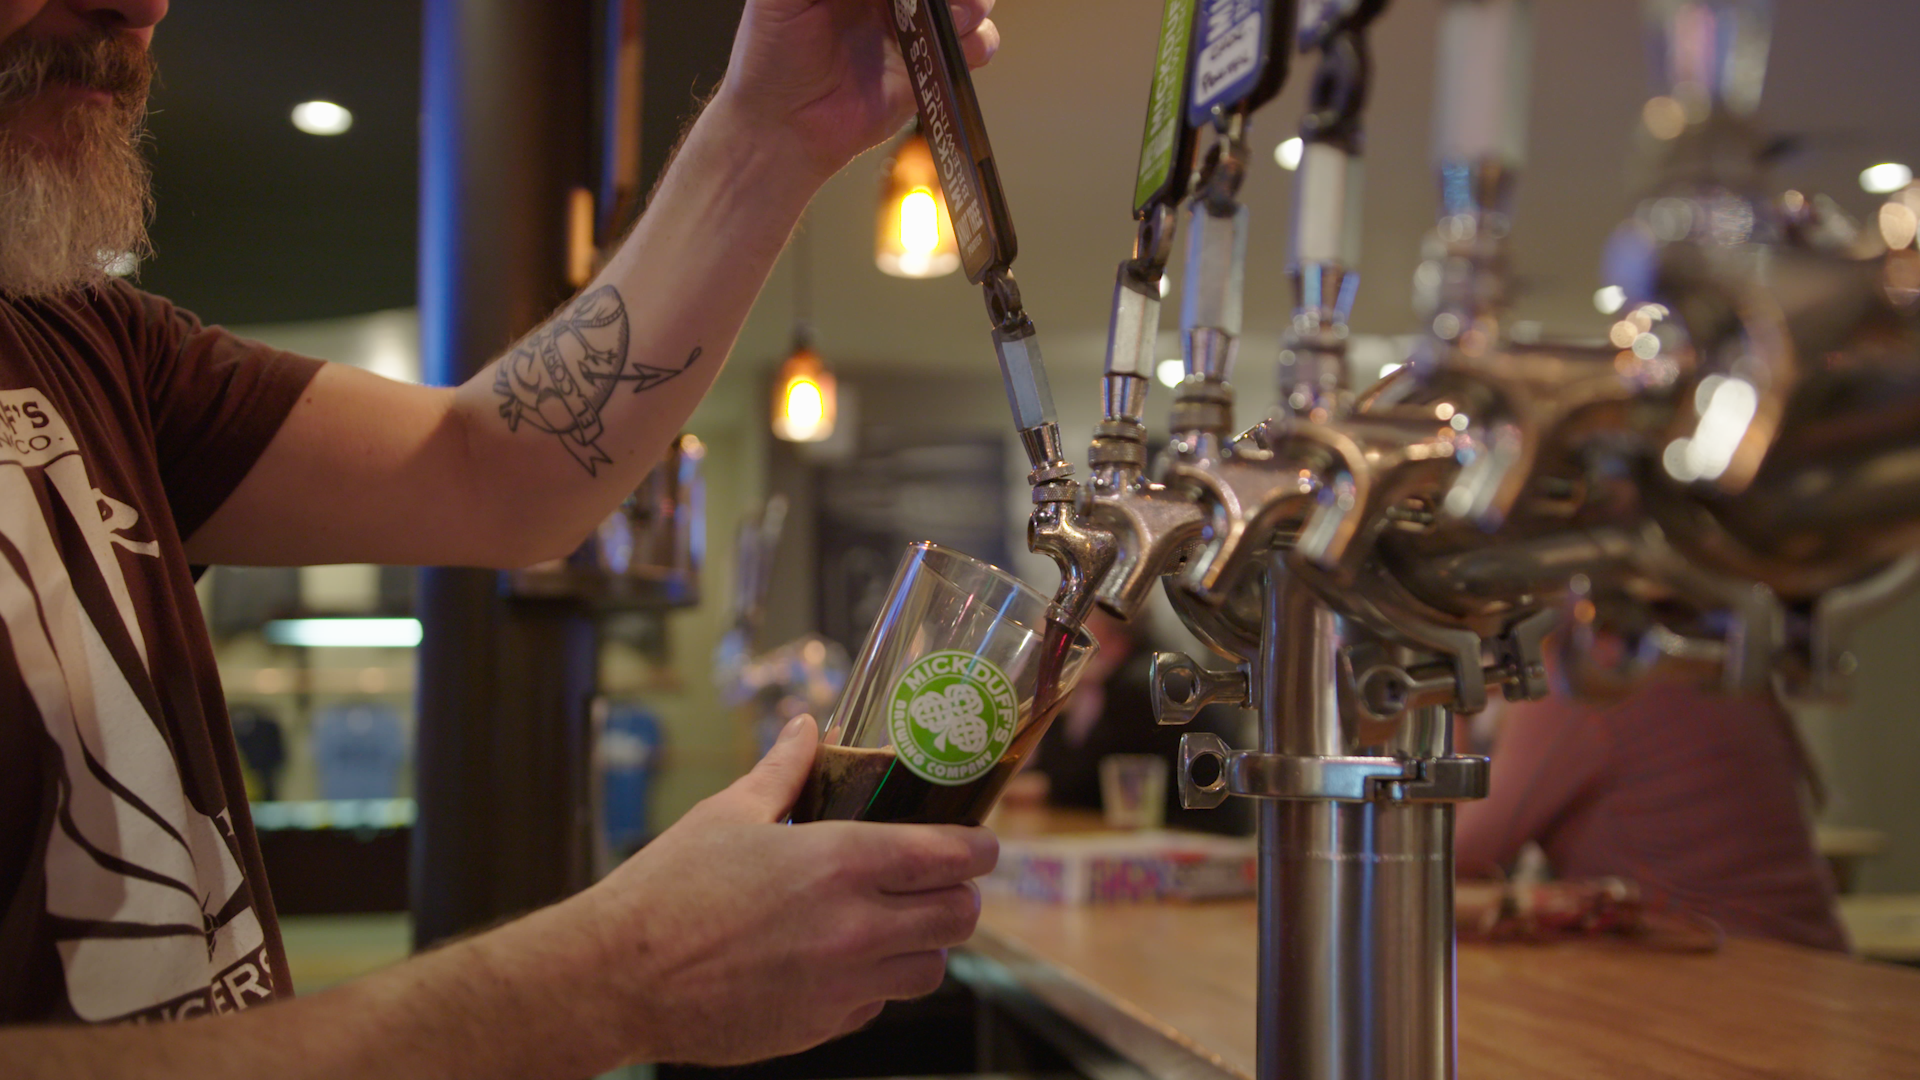 A man pours a beer from the tap at the bar in Idaho